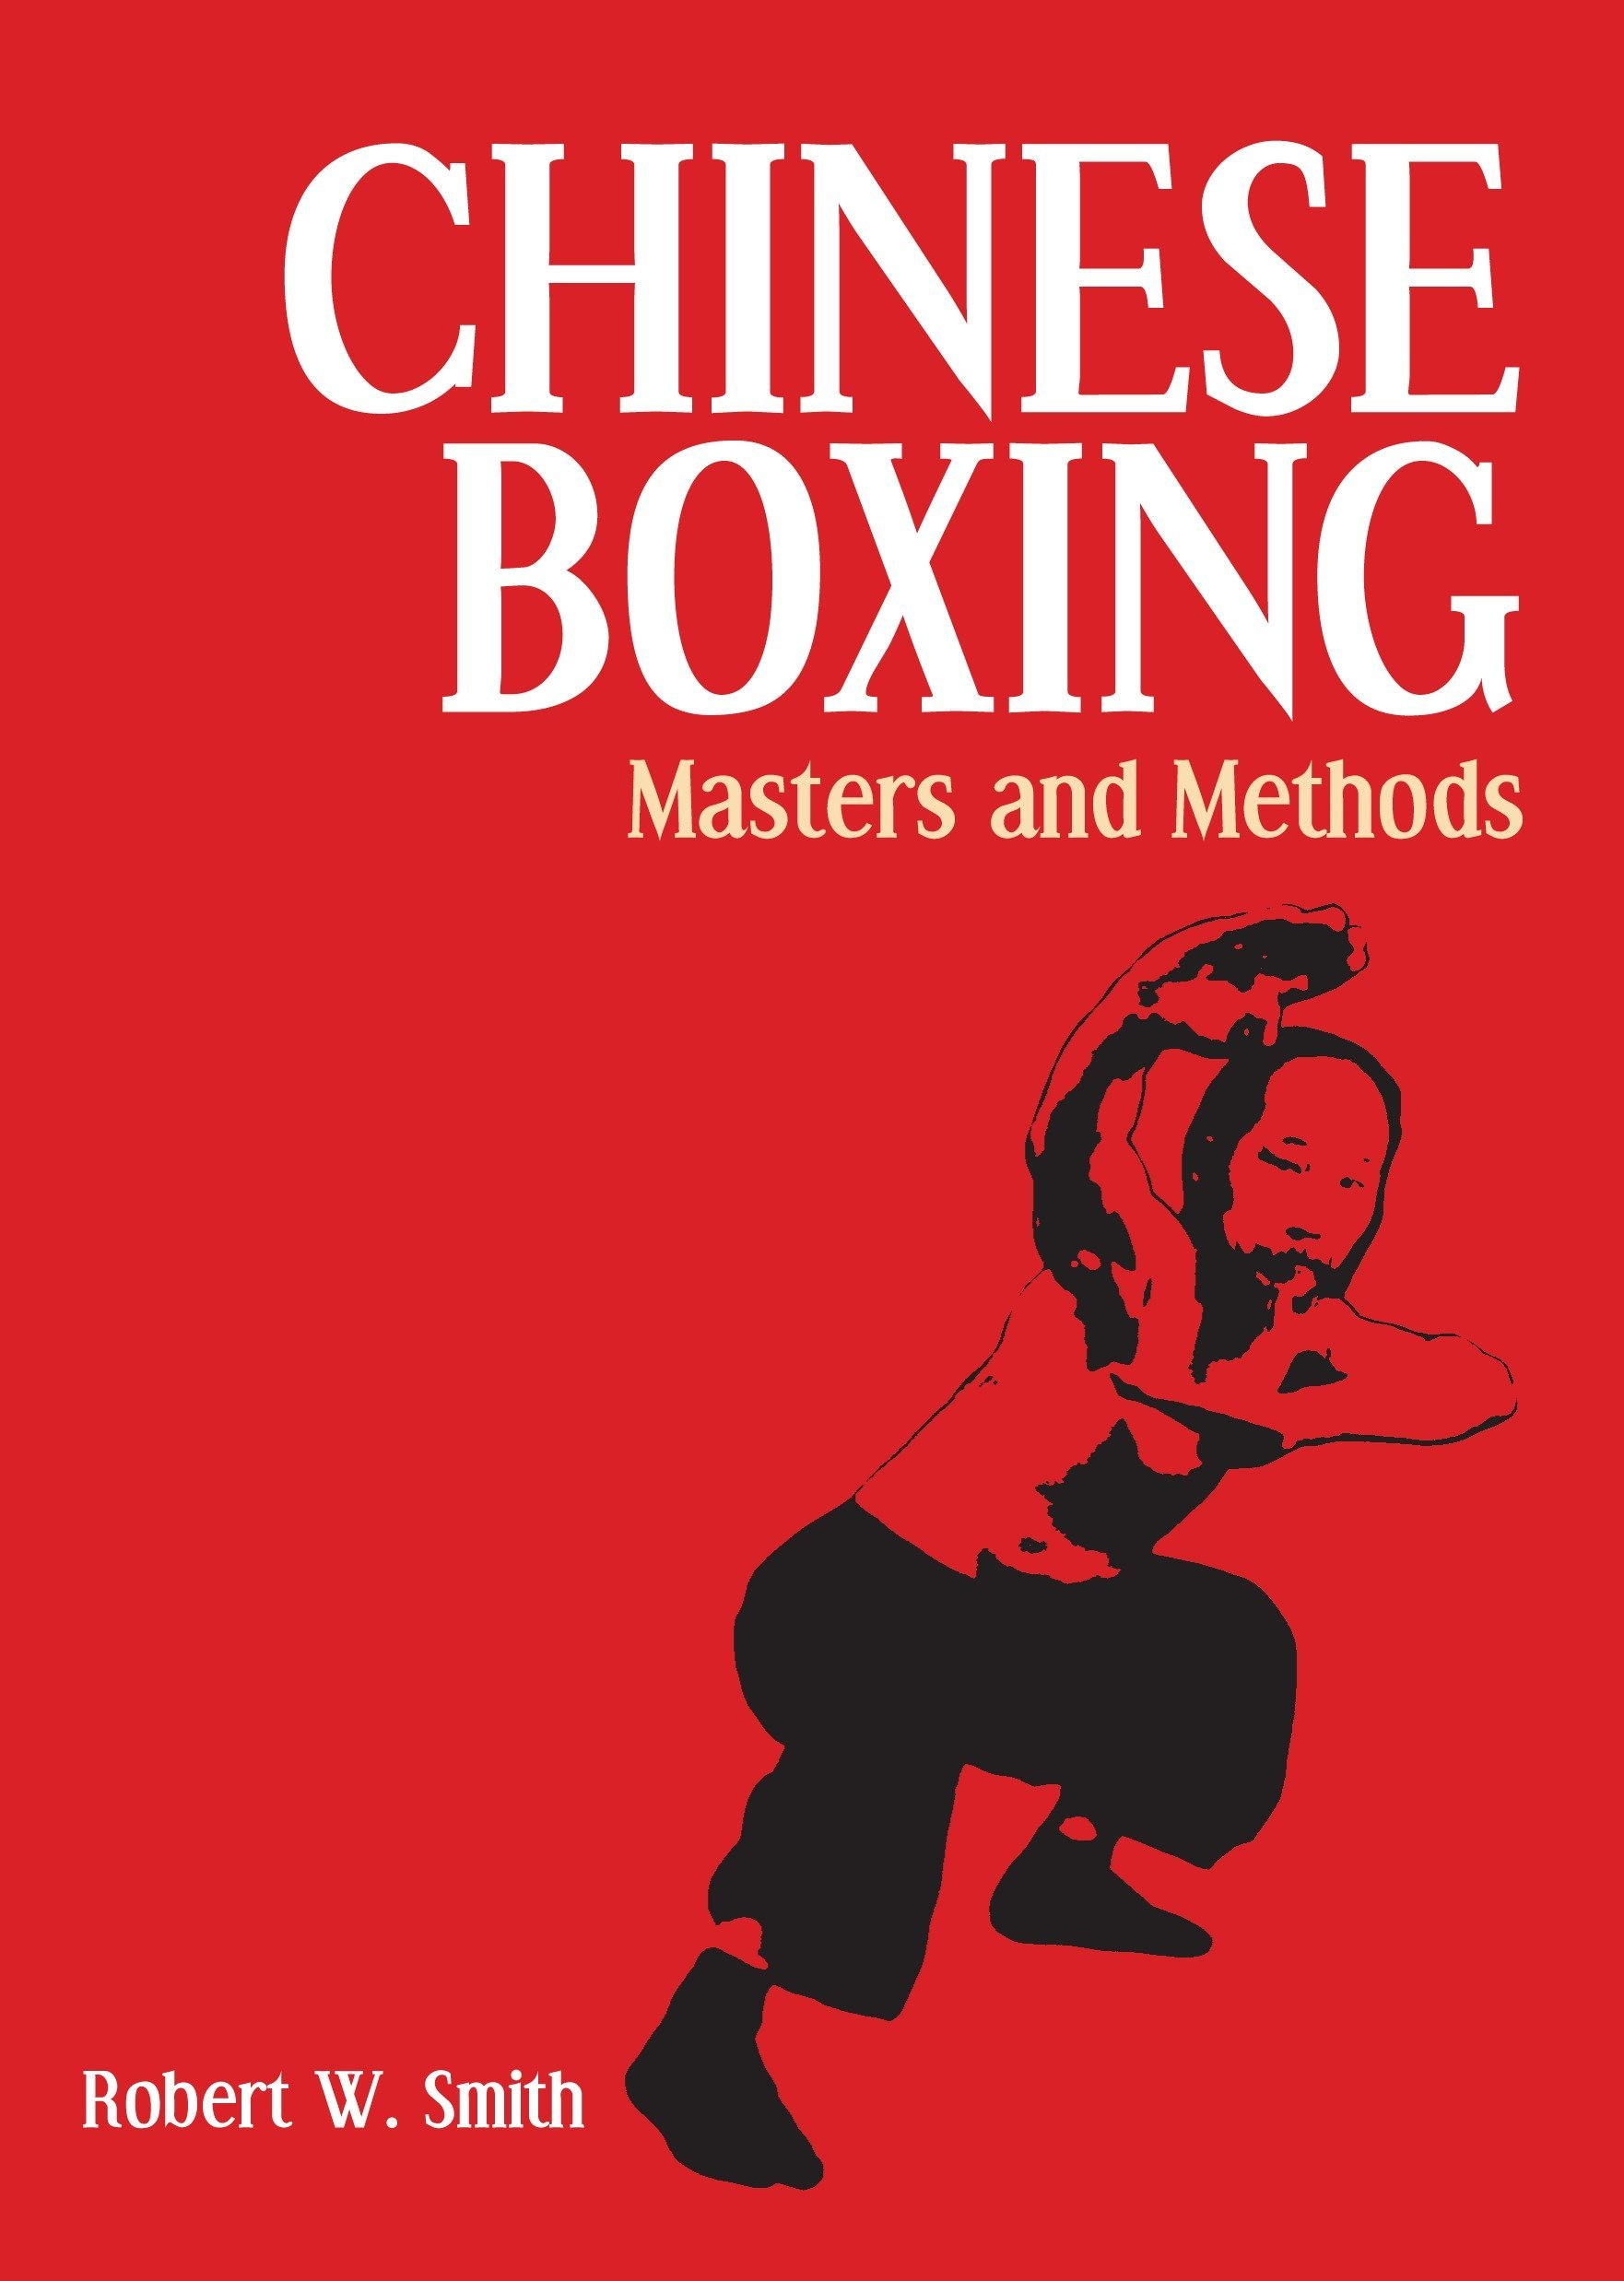 Chinese Boxing by Robert Smith Journey to the Center of the Physiological Universe article by Marty Gallagher